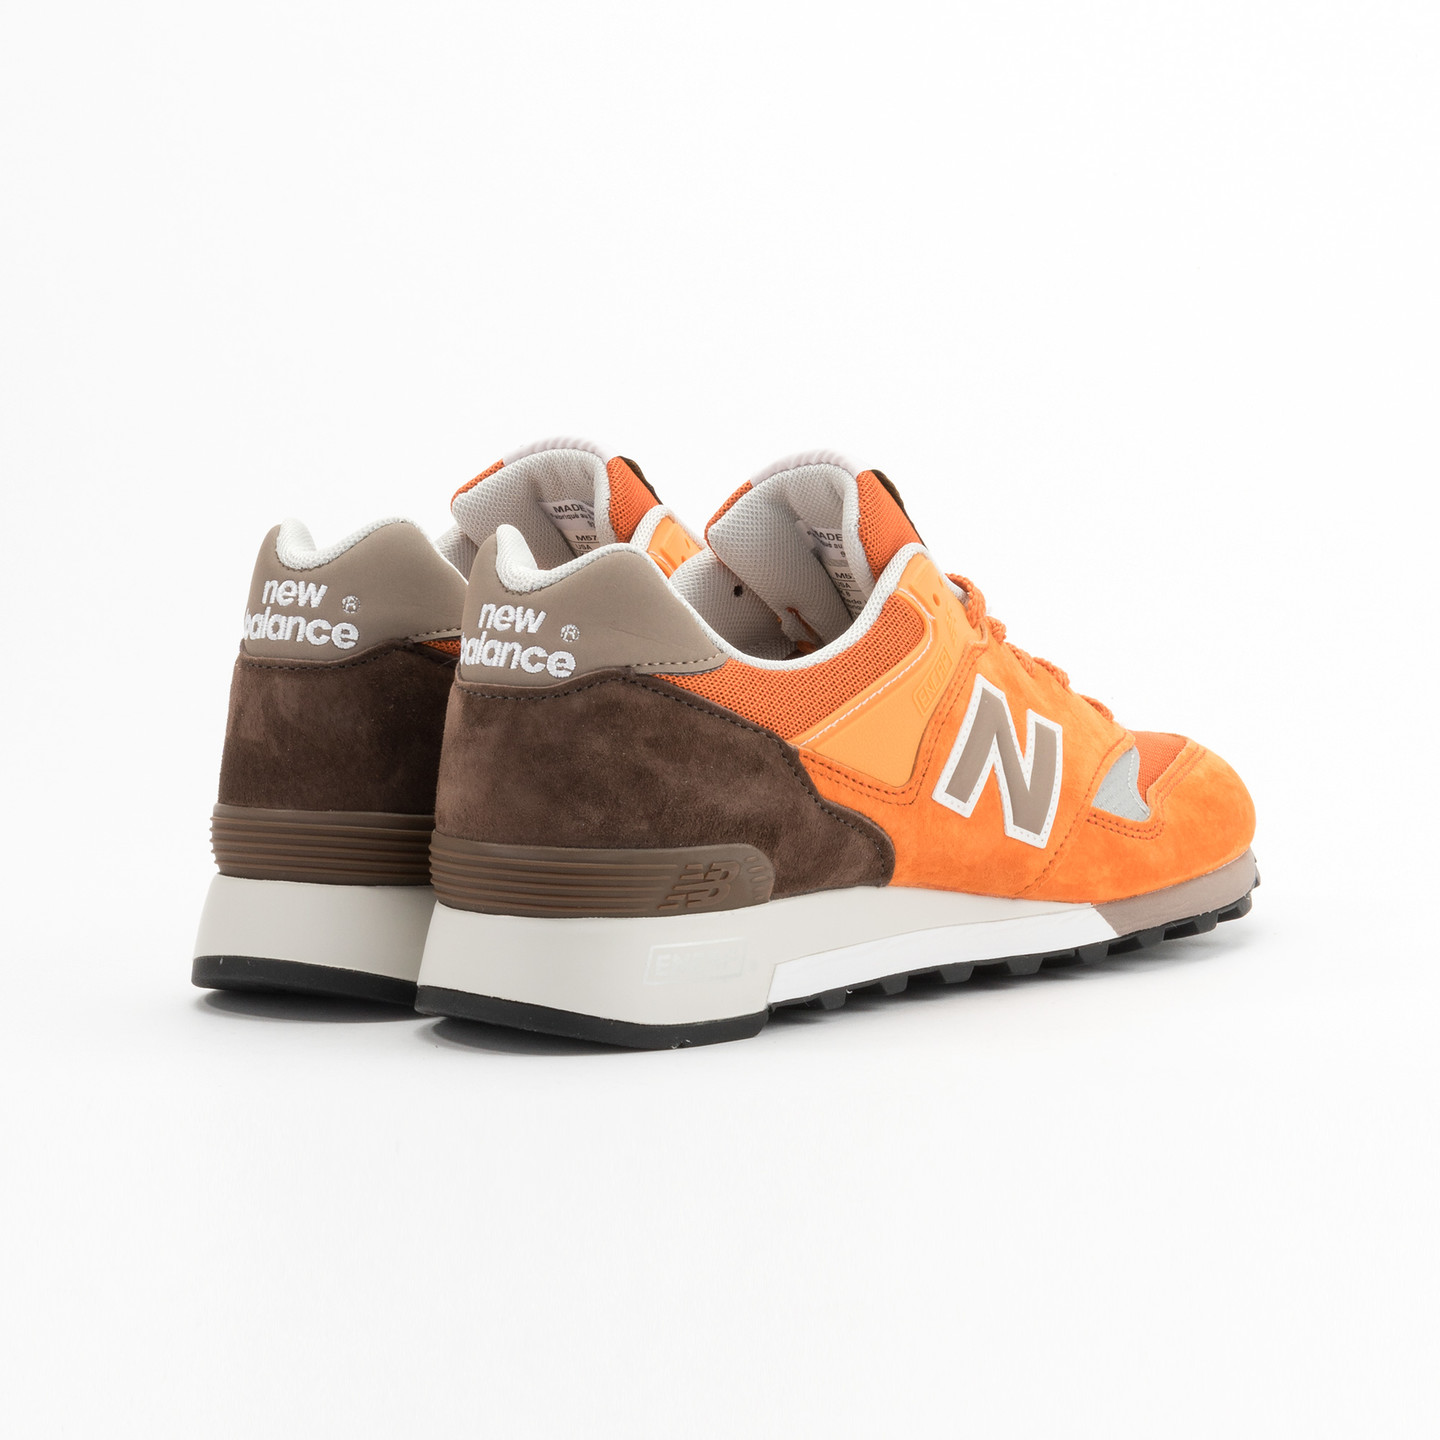 New Balance M577 ETO - Made in England Orange / Brown M577ETO-42.5